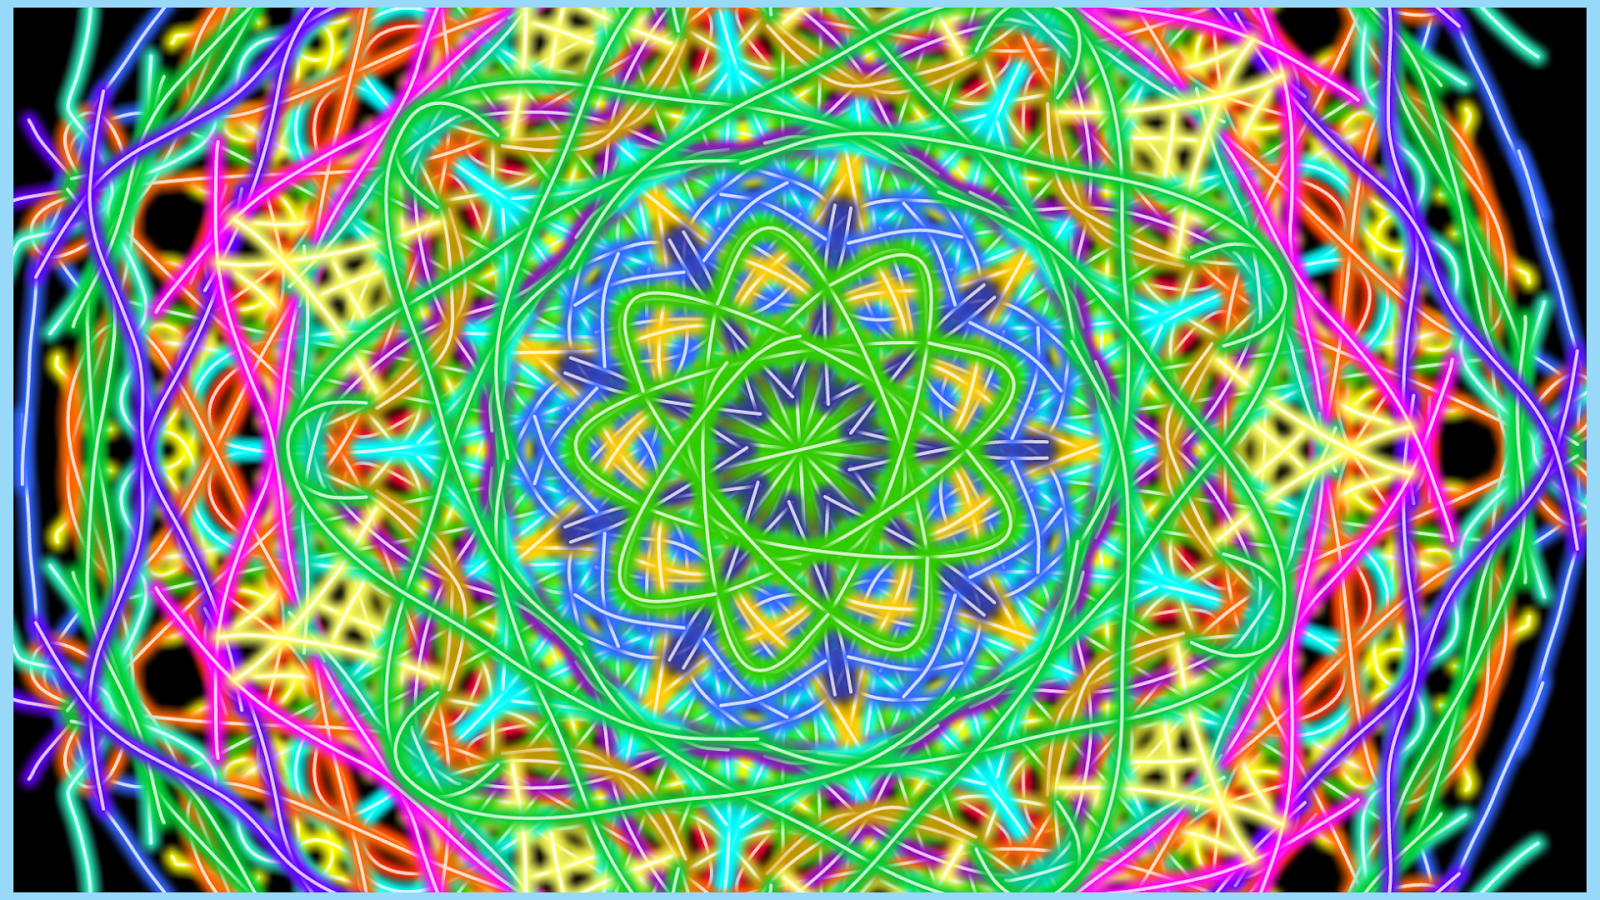 Color art kaleidoscope - Kaleidoscope Magic Paint Screenshot